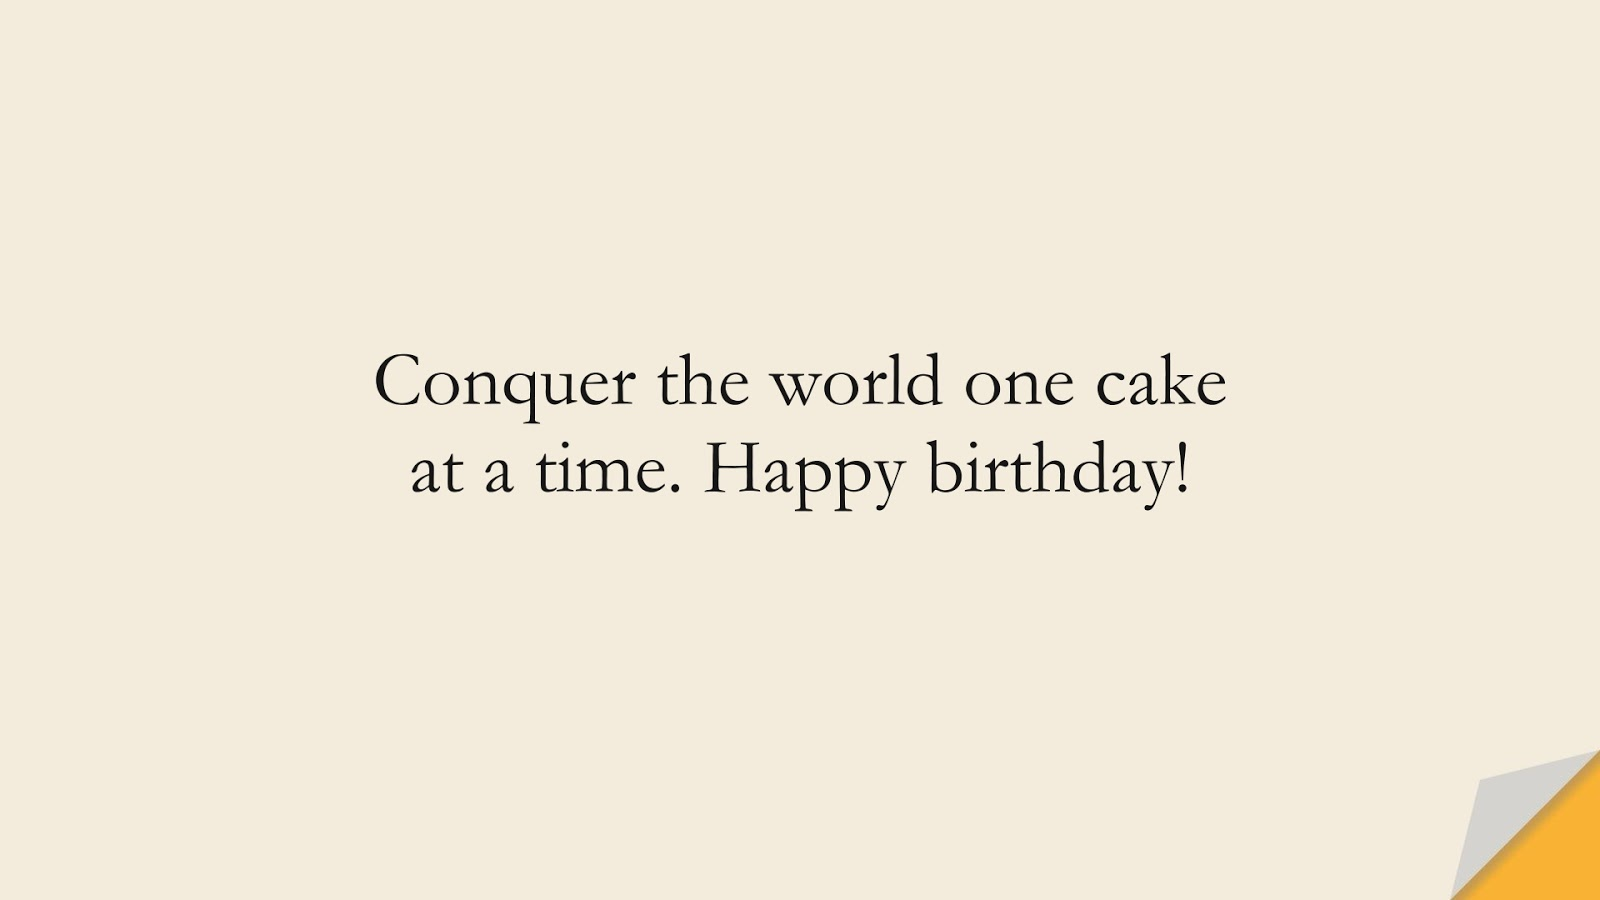 Conquer the world one cake at a time. Happy birthday!FALSE